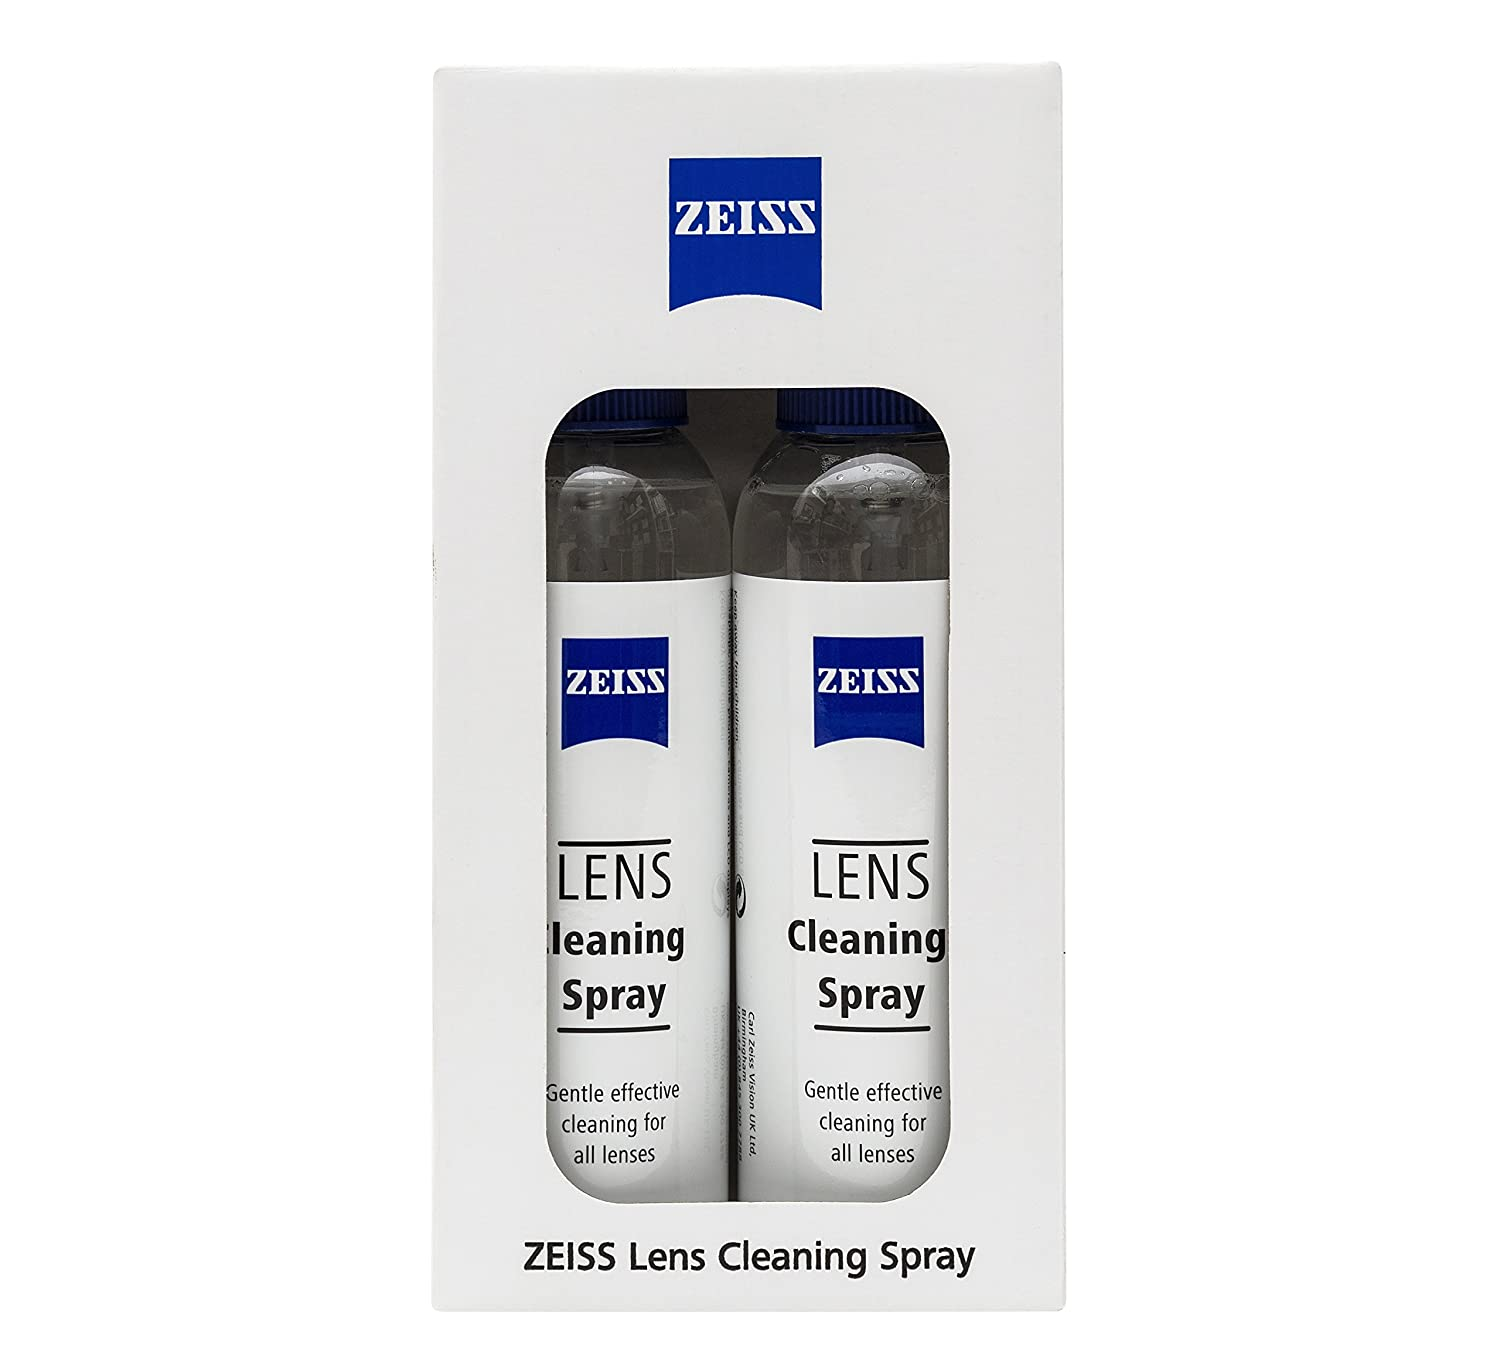 ZEISS Lens Cleaning Spray (2x120ml)